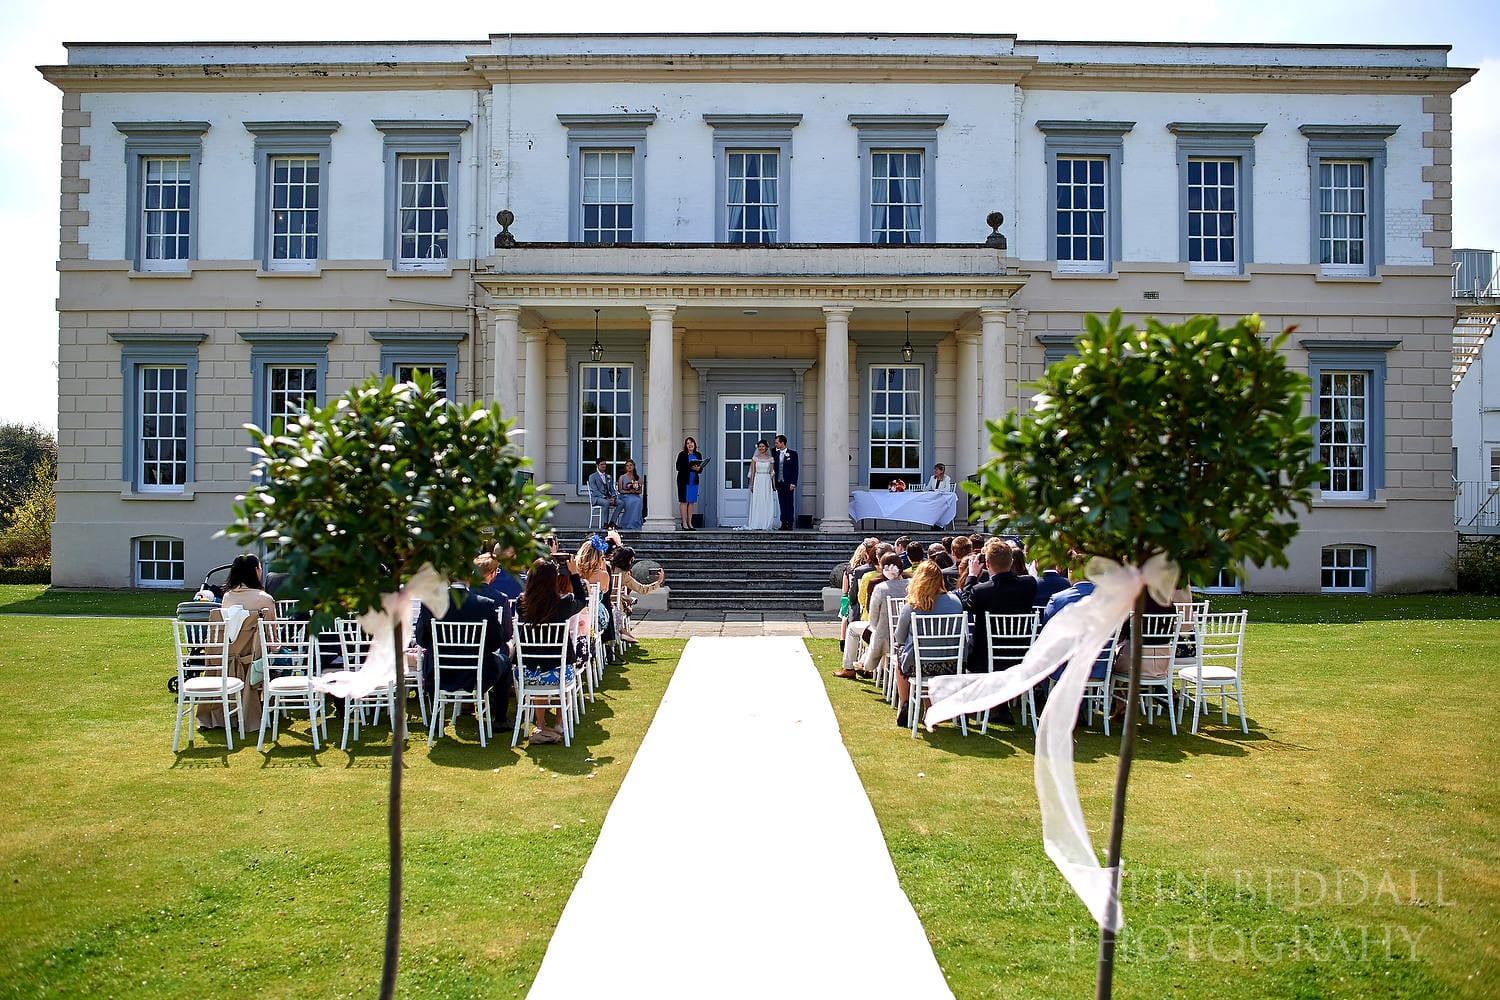 Buxted Park wedding outdoors